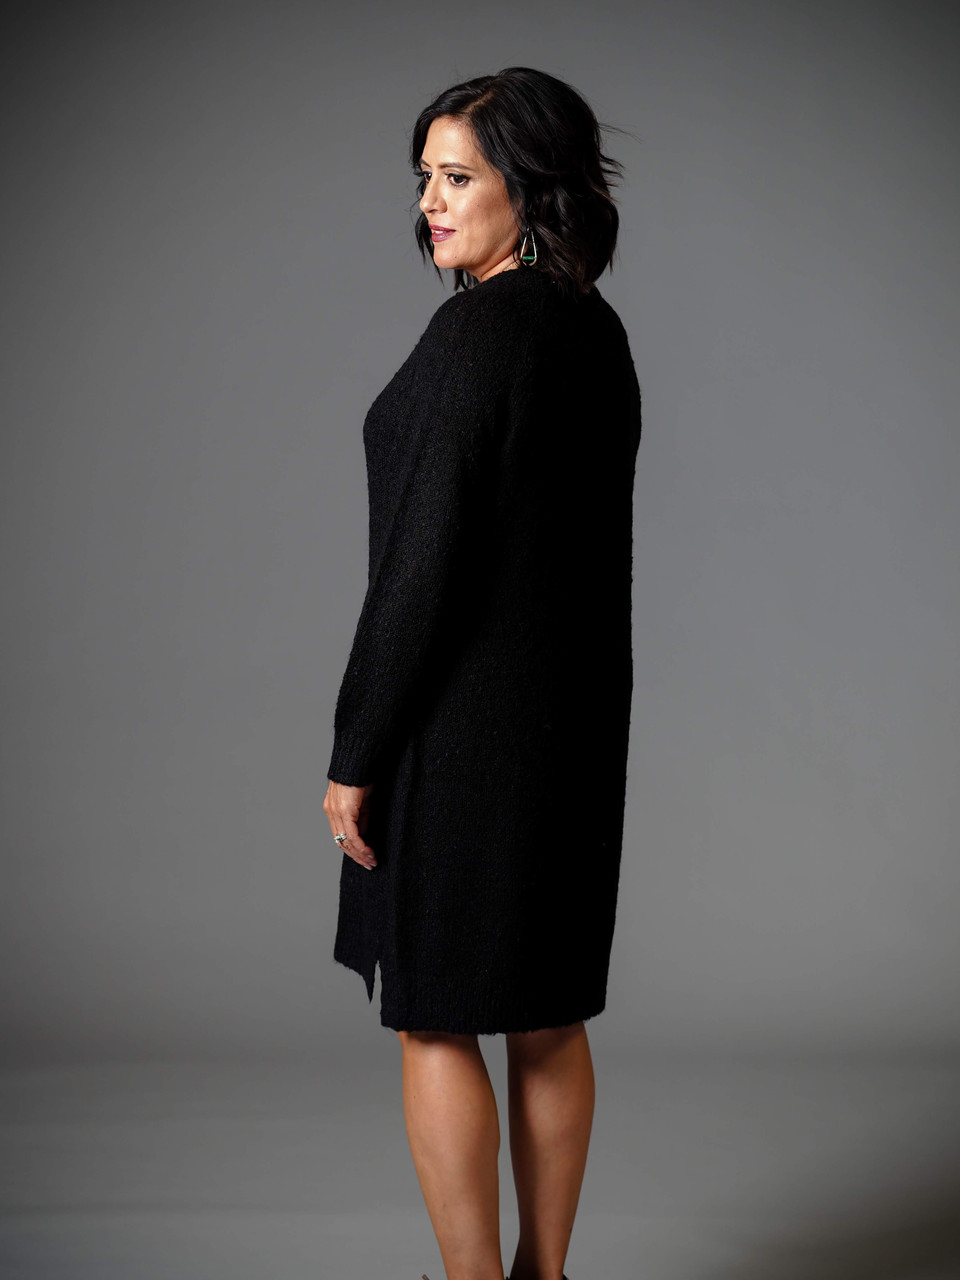 black crew neck sweater dress